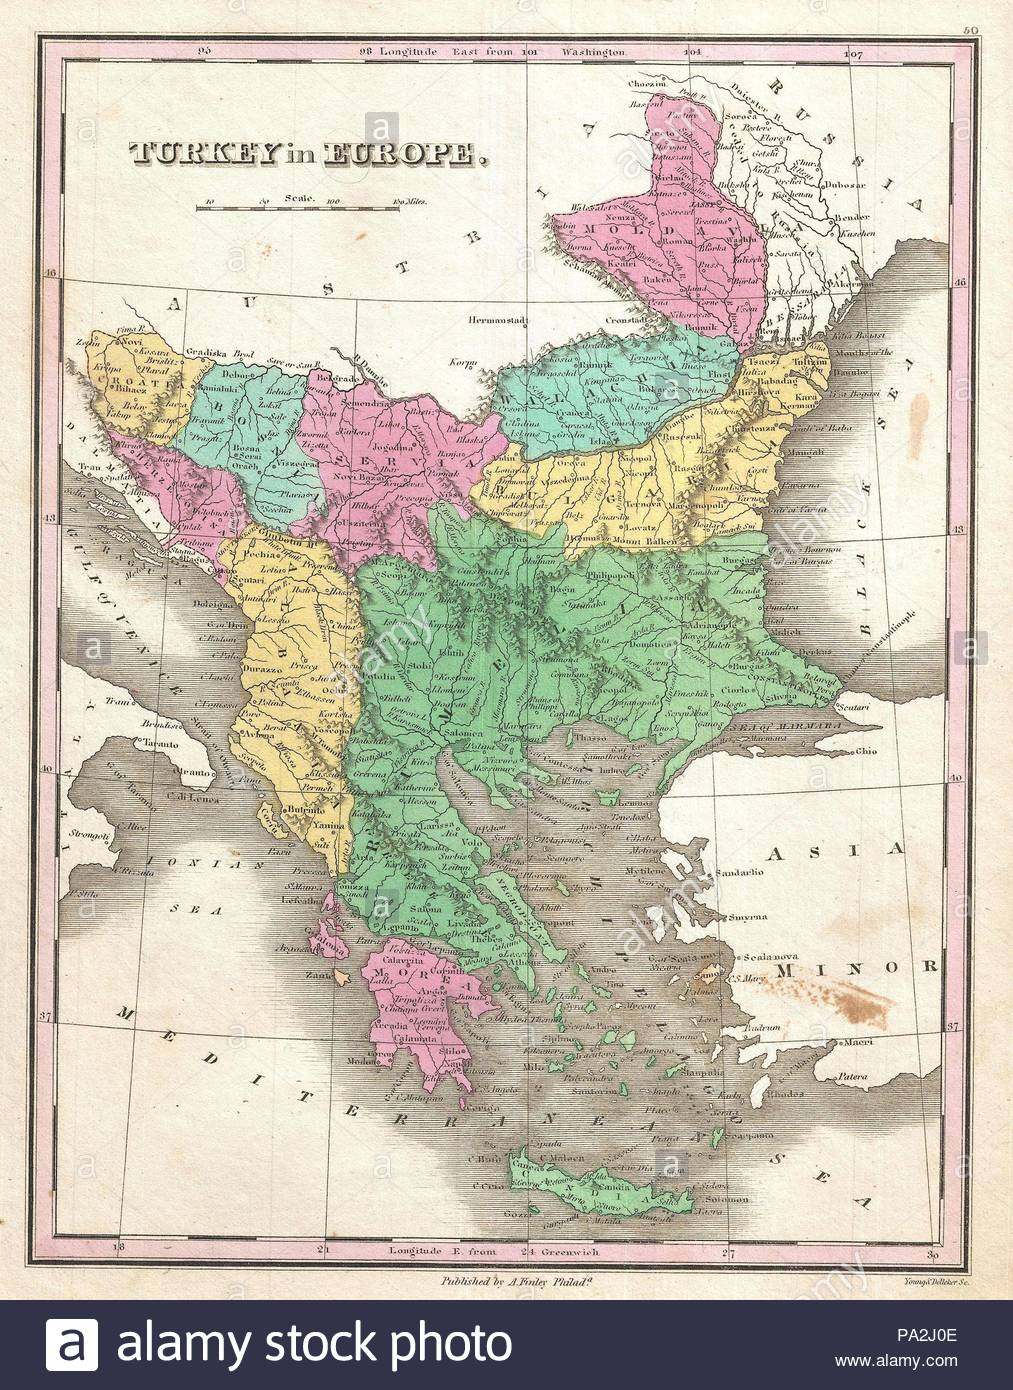 1827, Finley Map of Turkey in Europe, Greece and the Balkans ...